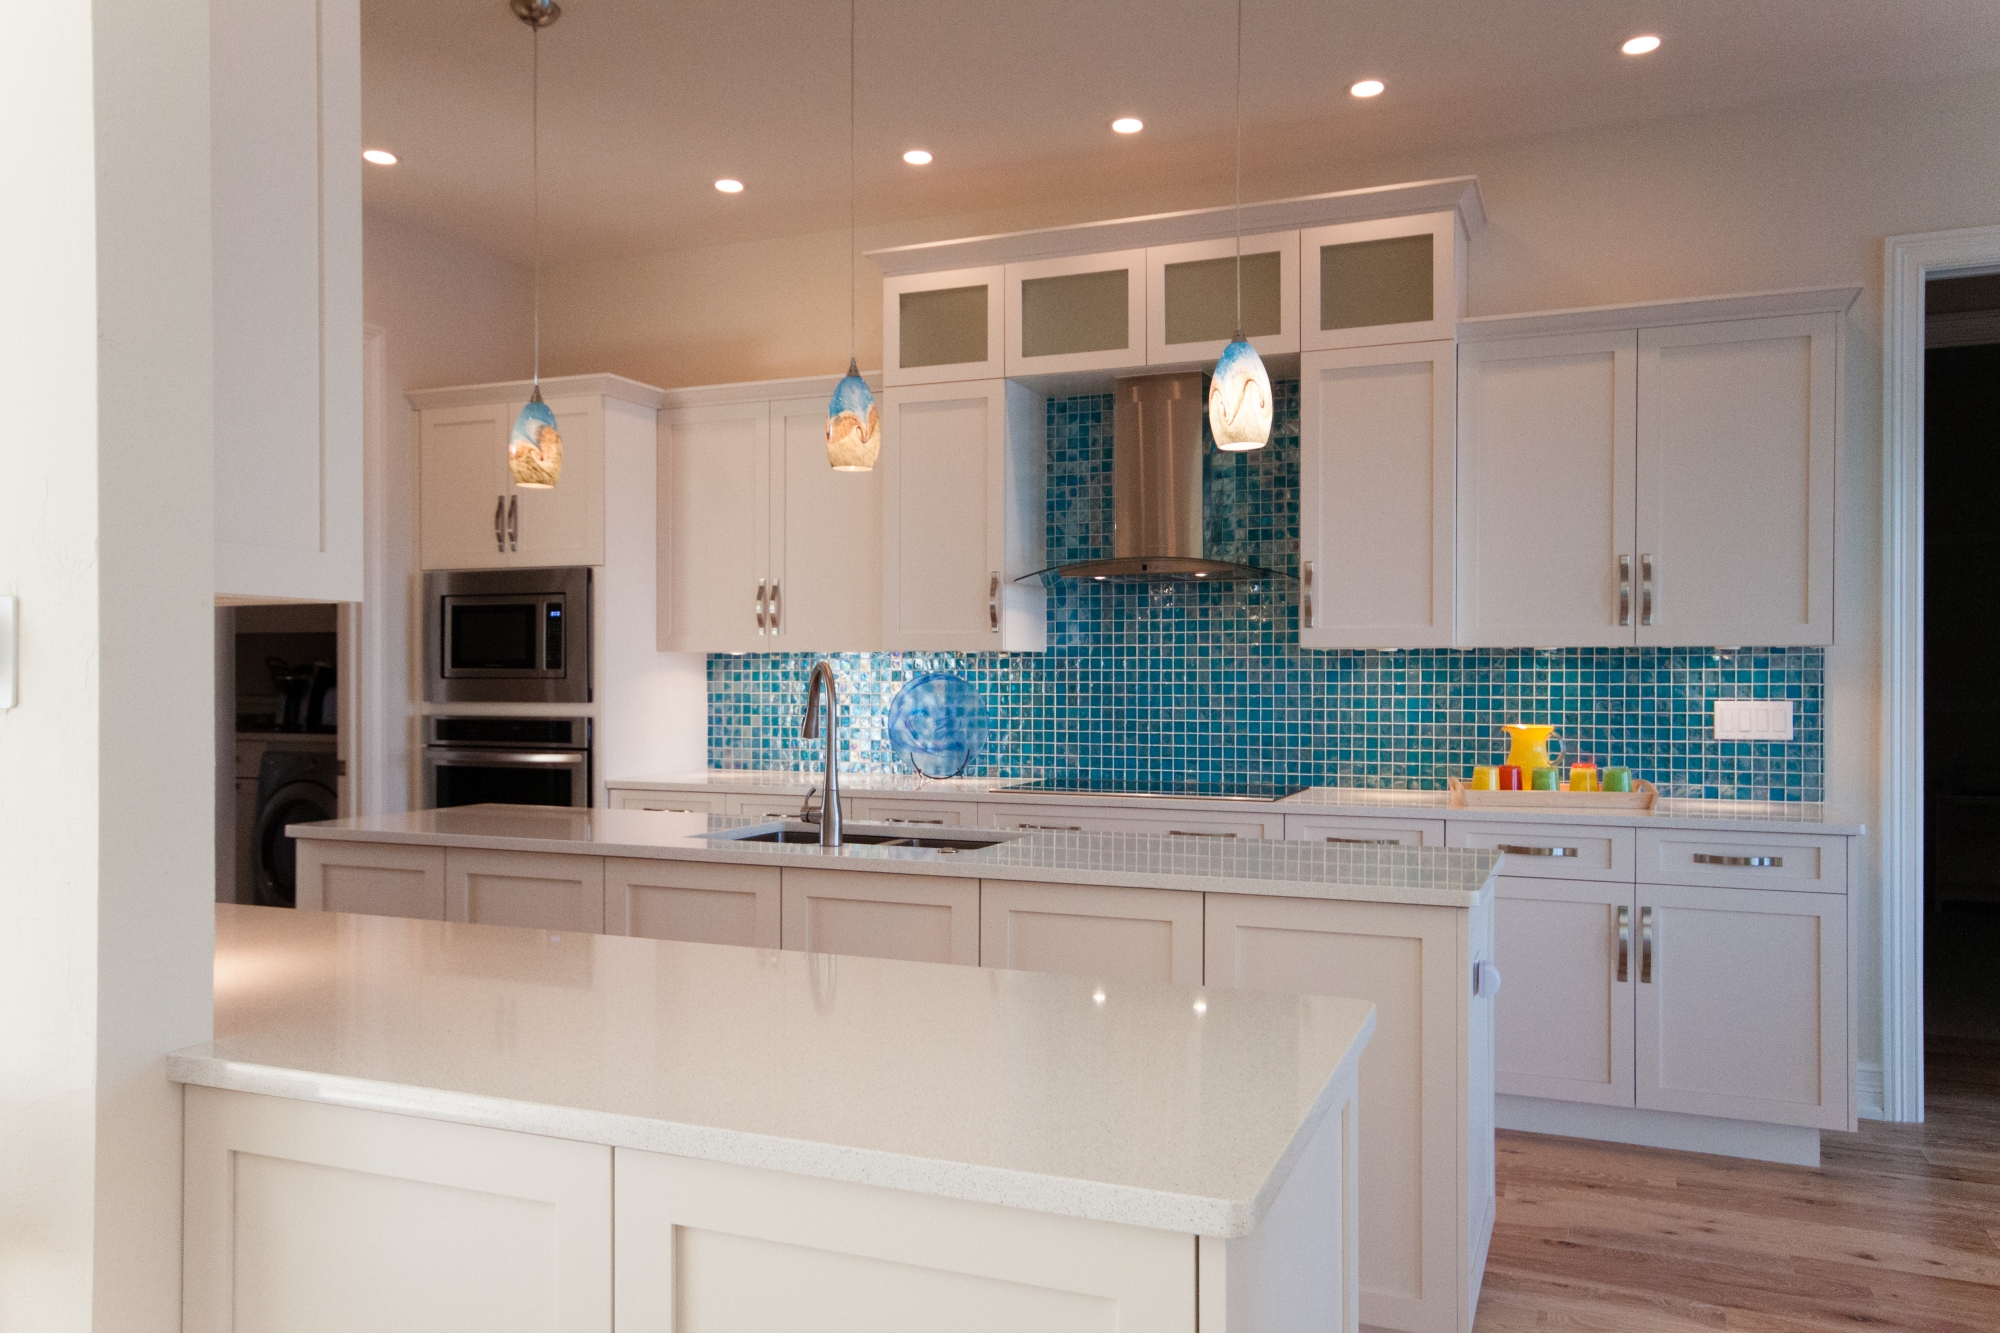 kitchen cabinet calculator inc new download of naples fl idolza vision cost granite countertops inspirational image alluring